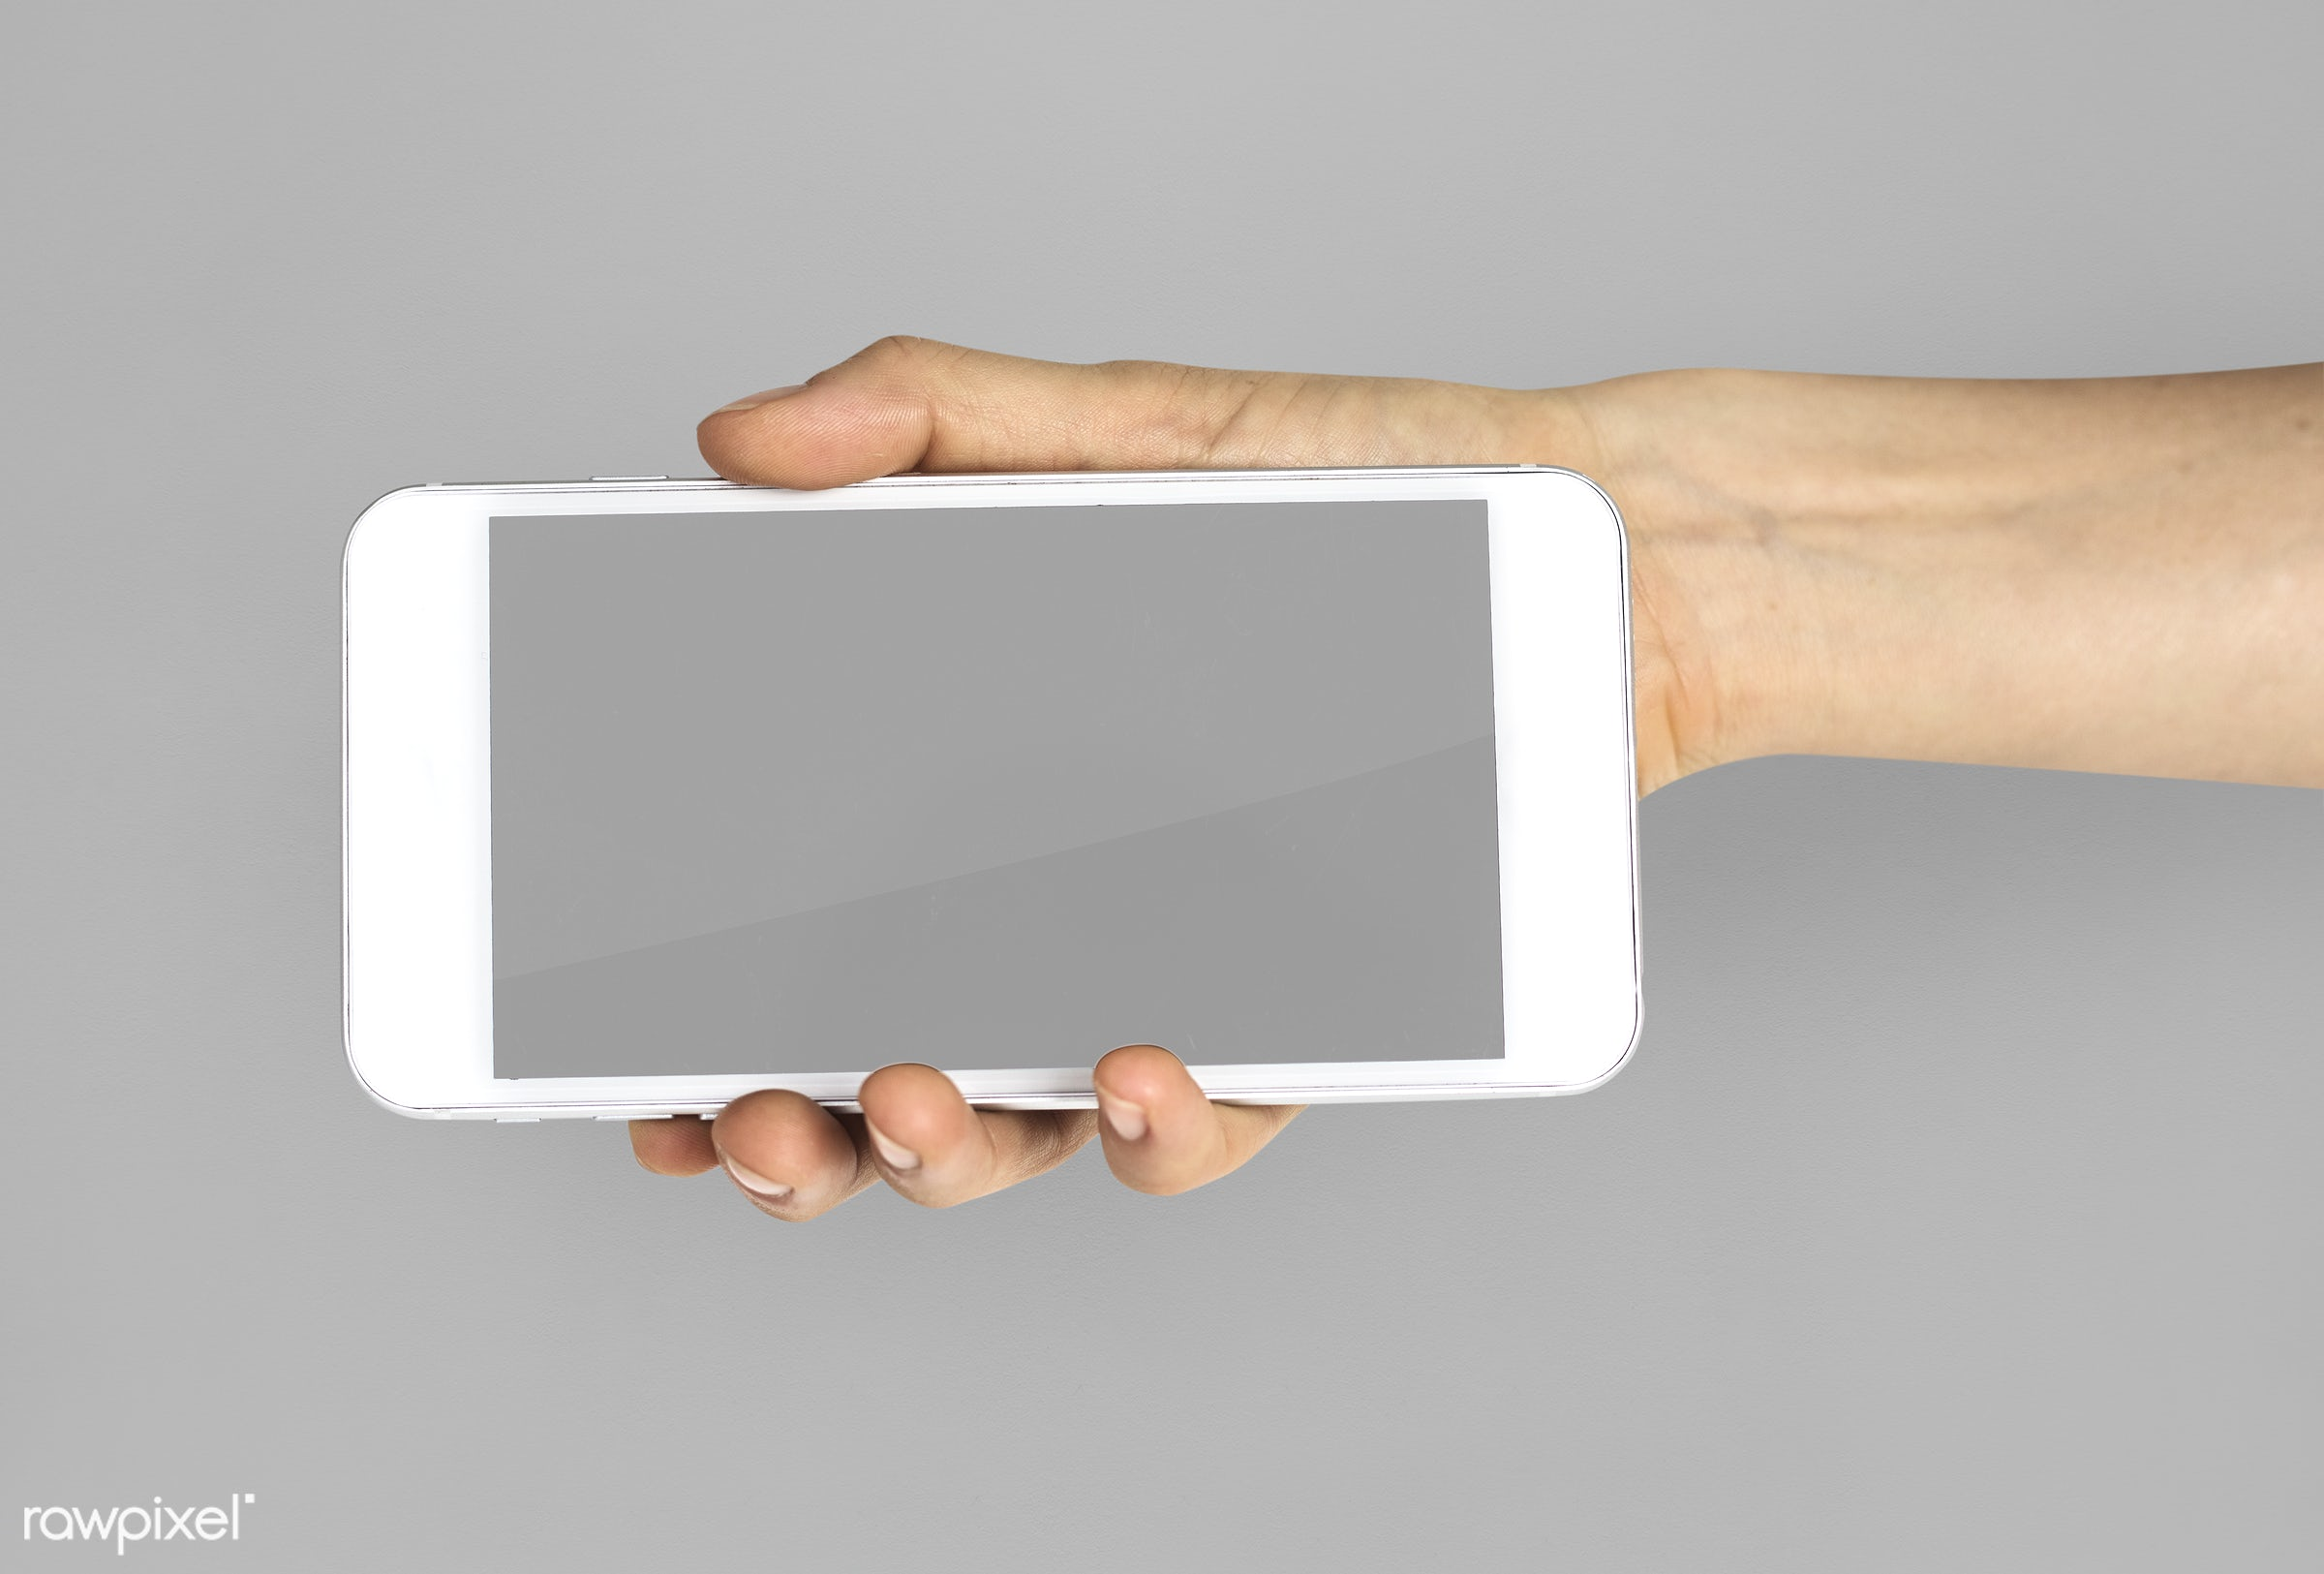 studio, call, phone, person, technology, portable, holding, object, landscape, people, digital, network, online, mobile...